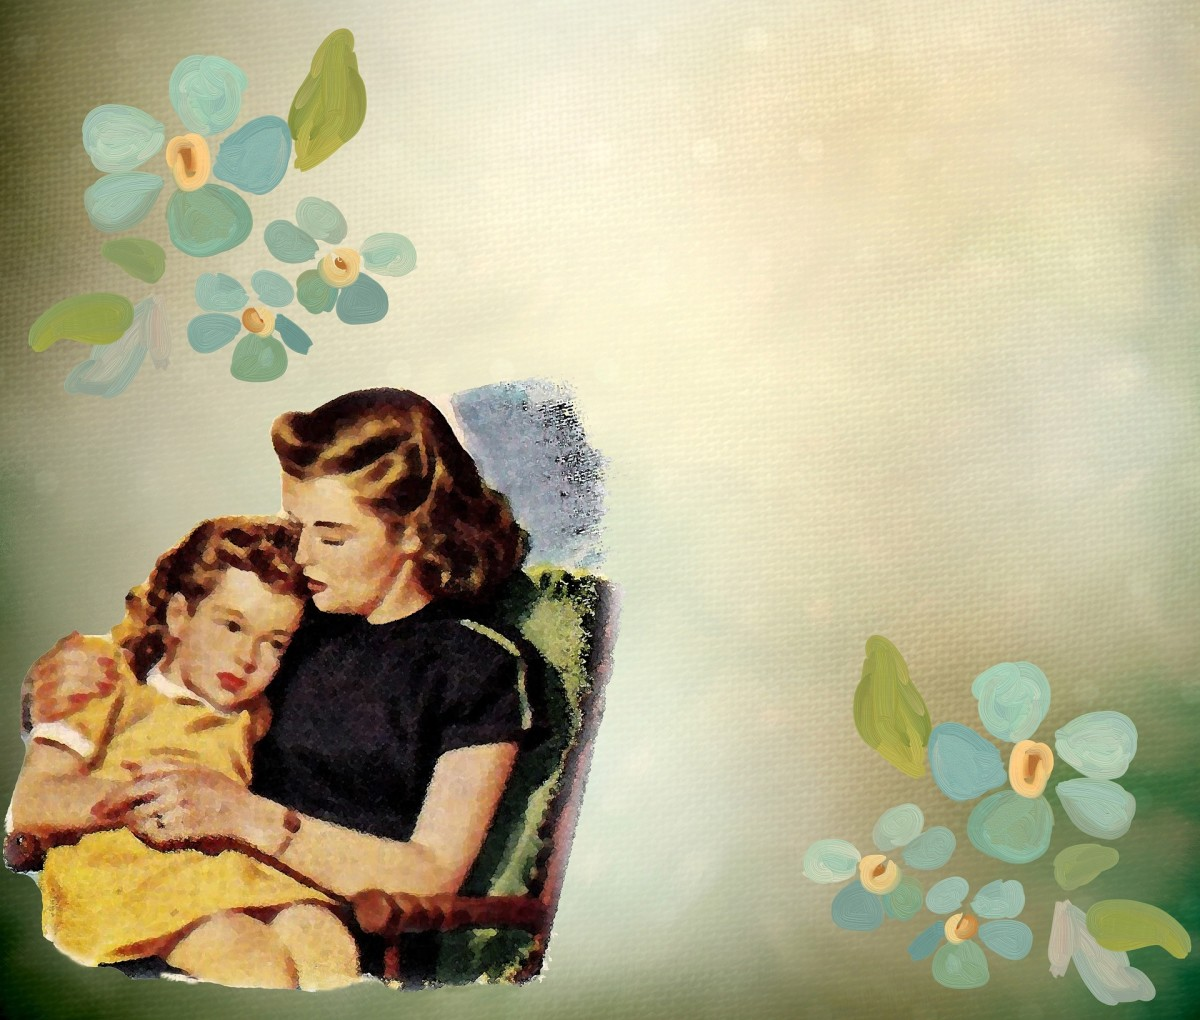 Days set aside to honor motherhood have been around for quite some time.